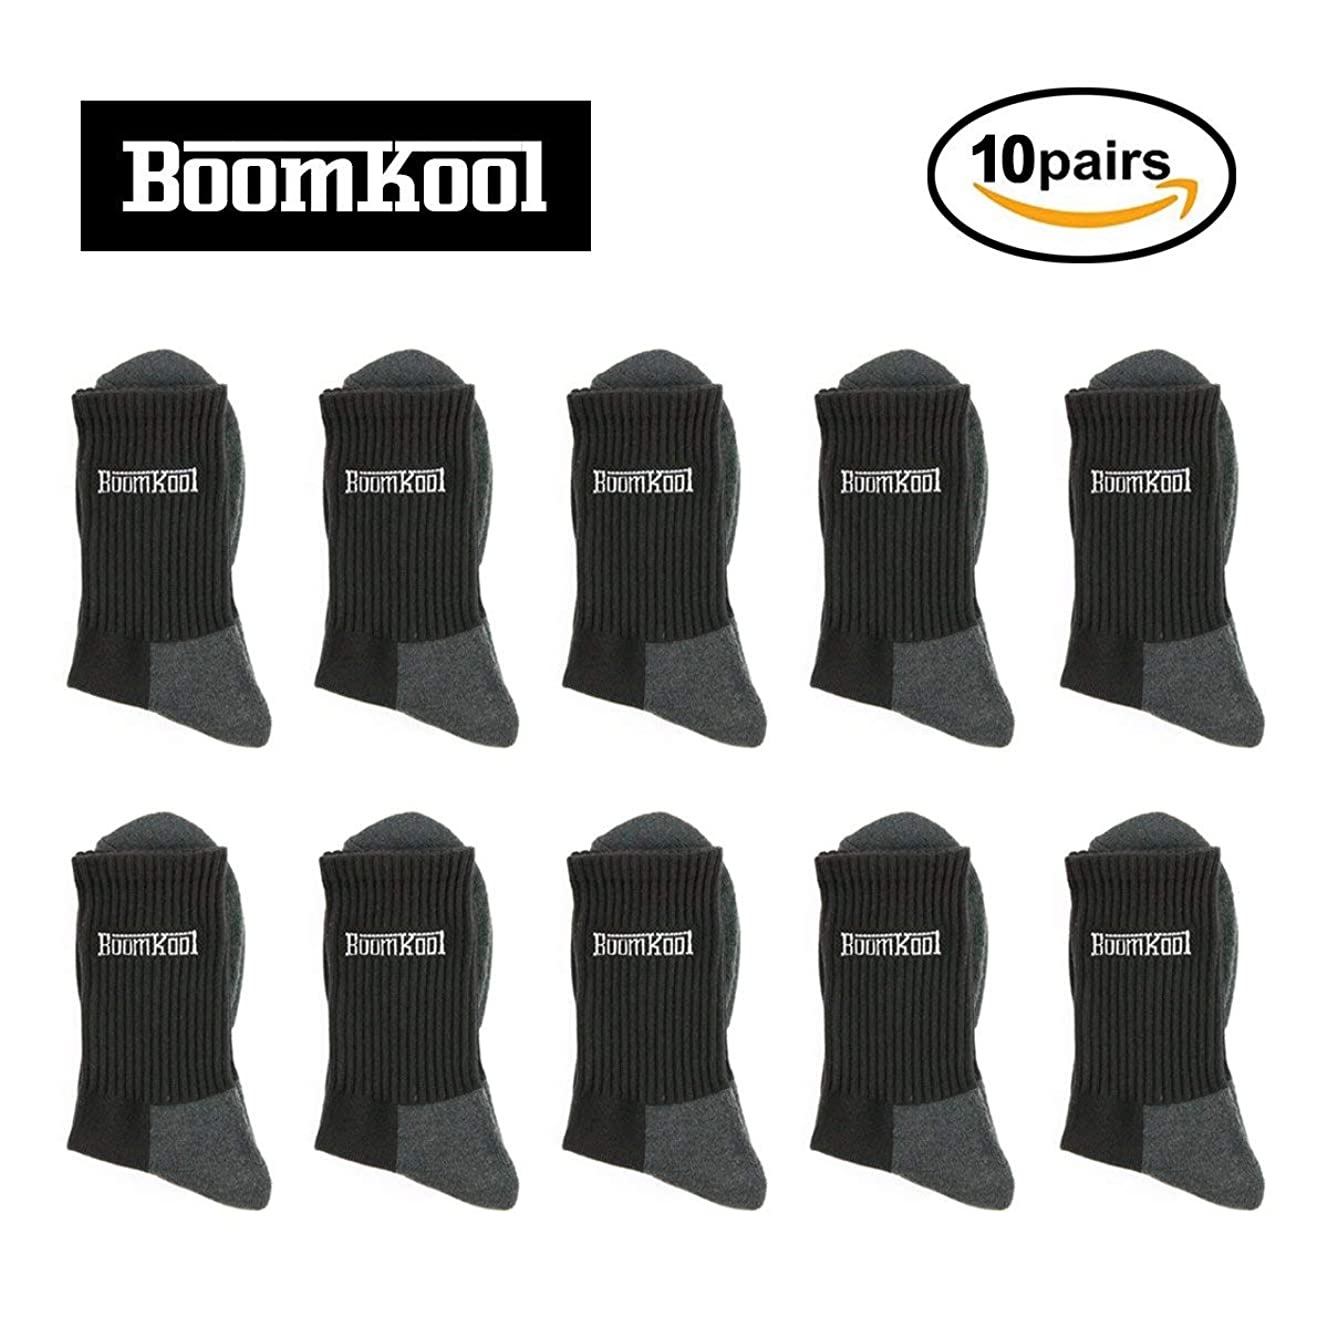 Men's Socks 10 Pack, Classic Fashion Cushion Crew Socks, Athletic Socks and Casual Socks for Suit by BoomKool